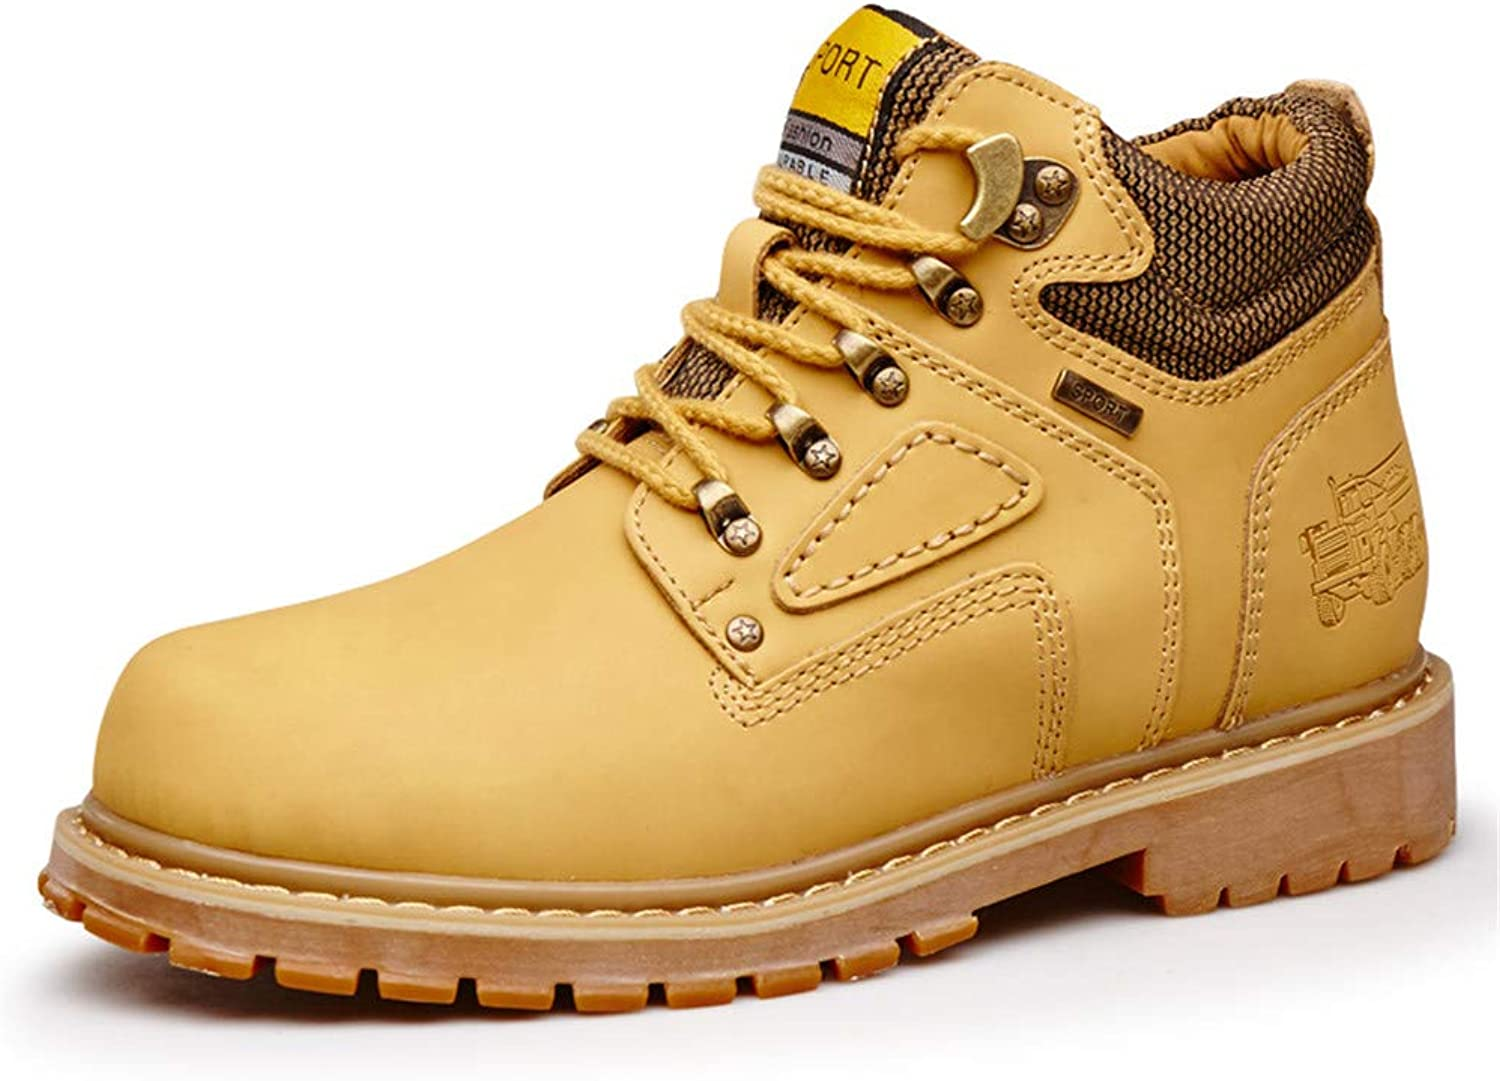 Snow Ankle Boots Men's Stylish comfortable Ankle Boots Casual Classic Round Top High Top Cotton Warm Outsole Work shoes (Conventional optional) Winter Warm Boots (color   Yellow, Size   10 UK)